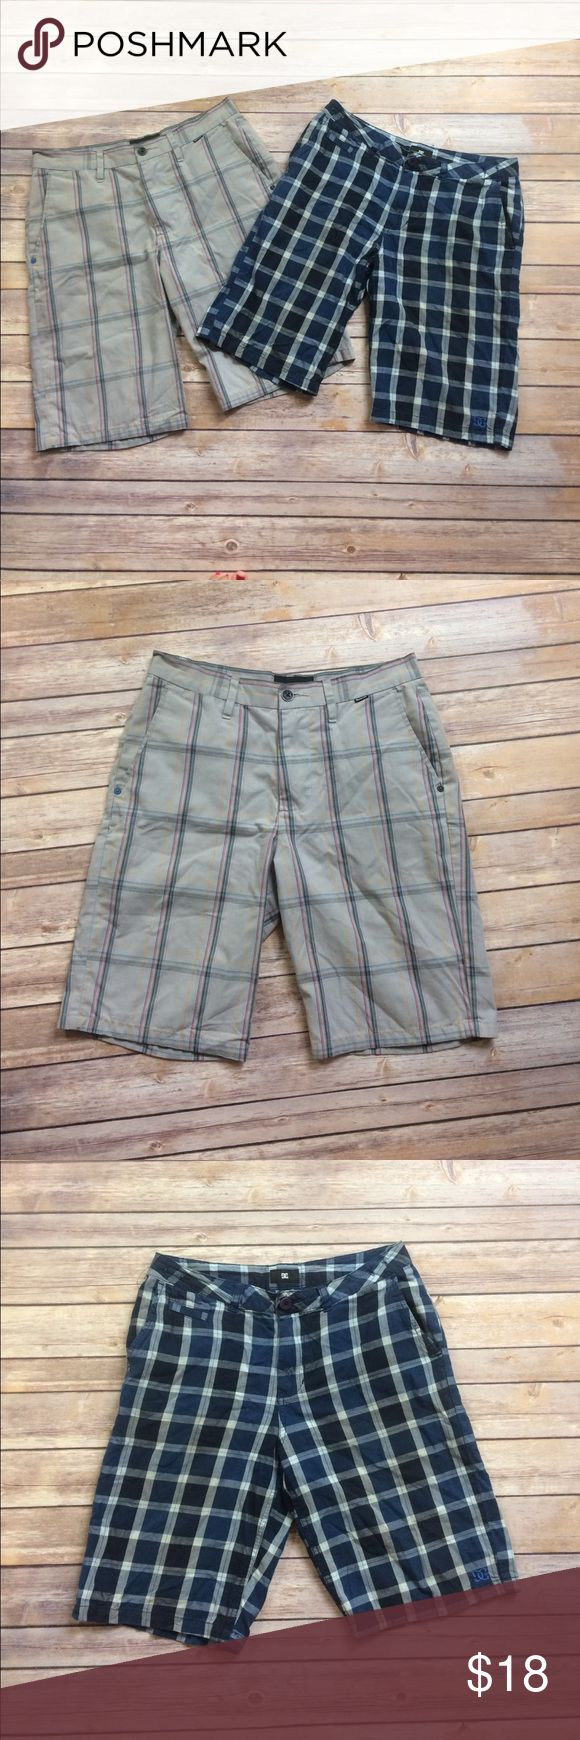 DC and Hurley men's plaid shorts Lot! Lightly worn grey Hurley men's  plaid shorts, size 29. And one lightly worn DC blue/black men's  plaid shorts. Size 29. Both in great condition! Hurley Shorts Cargo